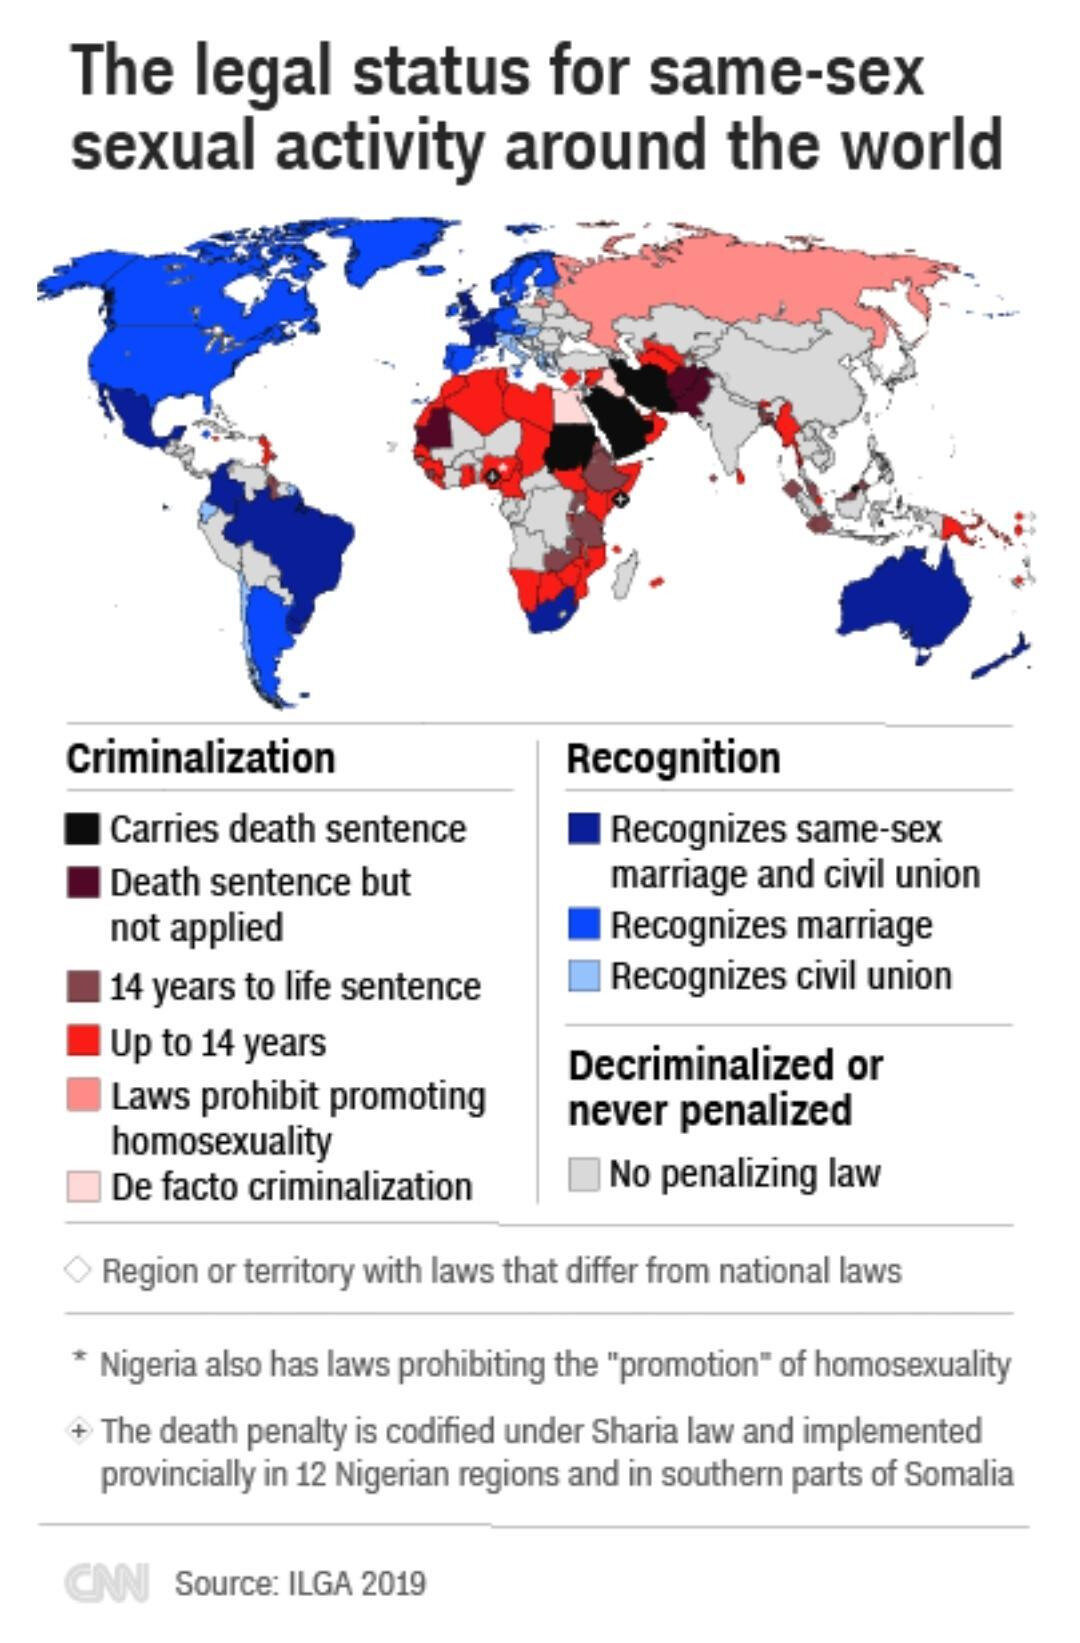 The legal status for same-sex sexual activity around the world, 2019